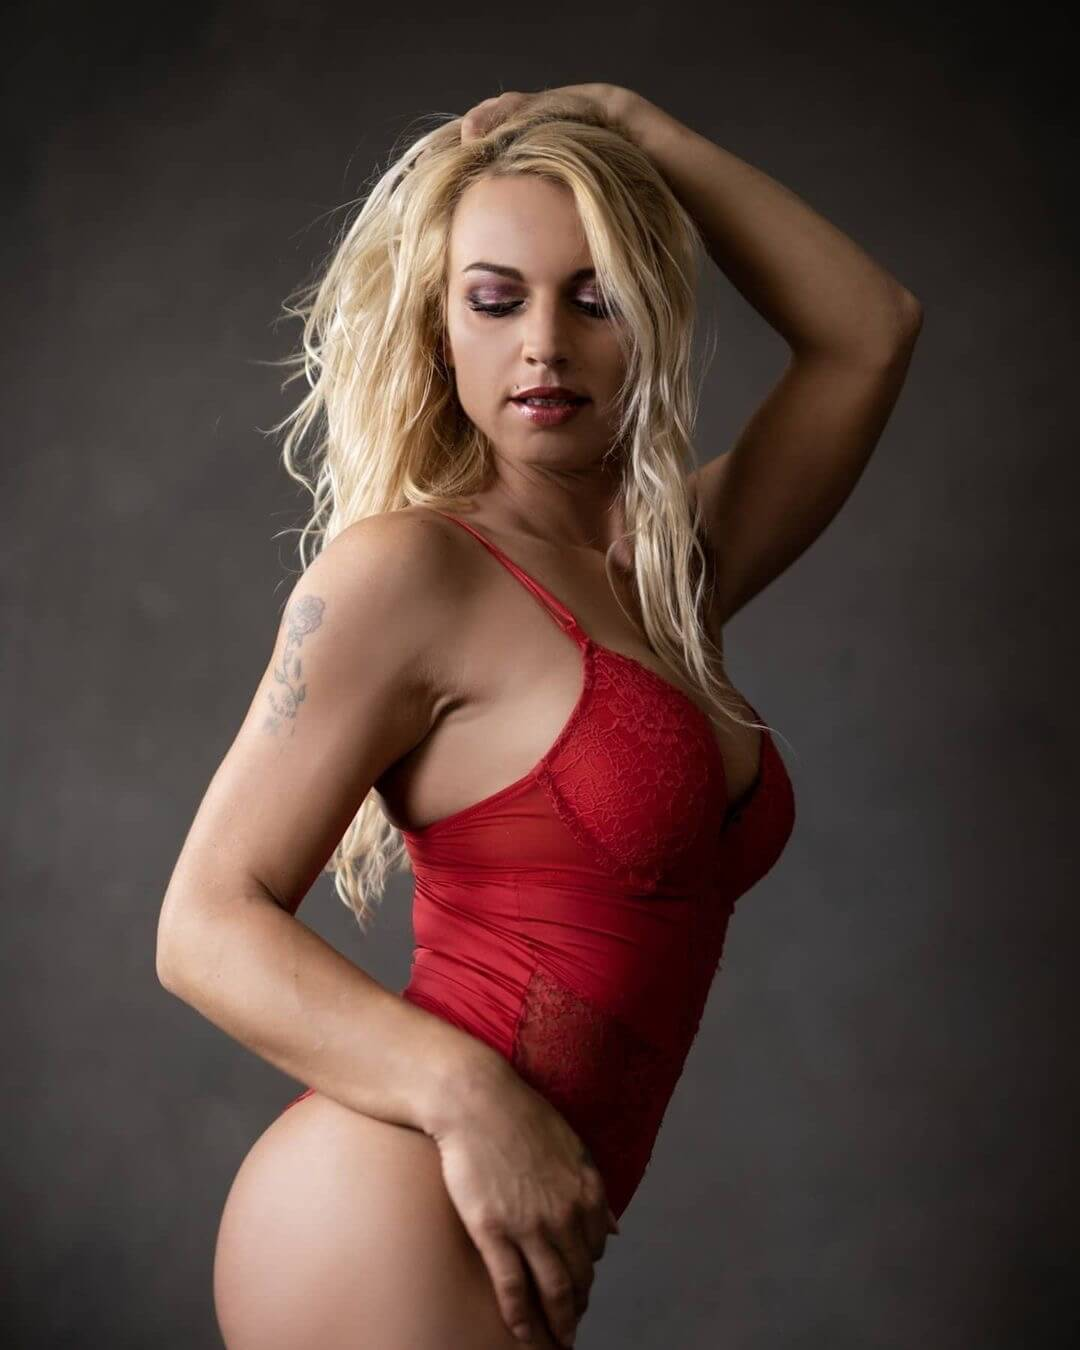 Sexy blonde Dutch inked model Willeke Bartels showing her hot fit mom body wearing red lingerie on a sexy boudoir photo session